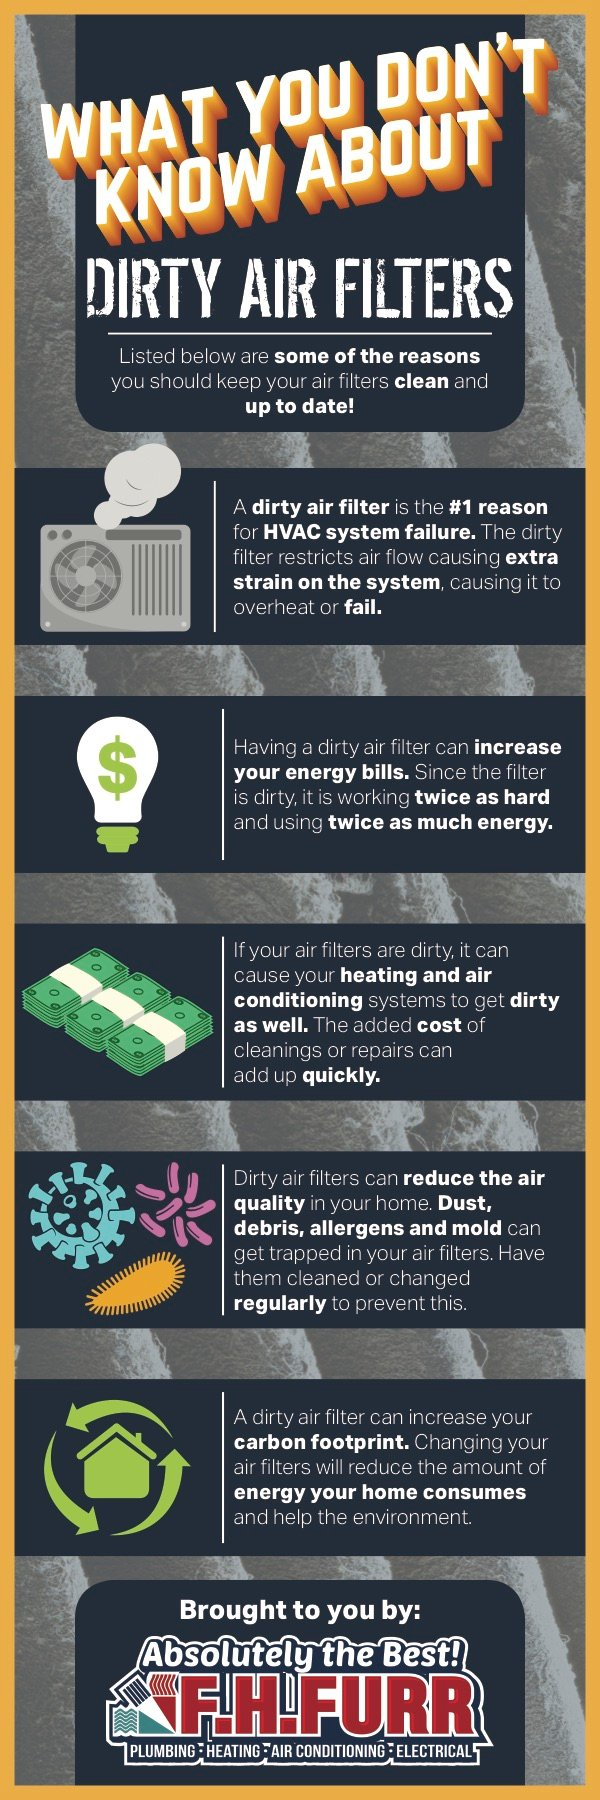 Indoor_Air_Quality_Infographic.jpg